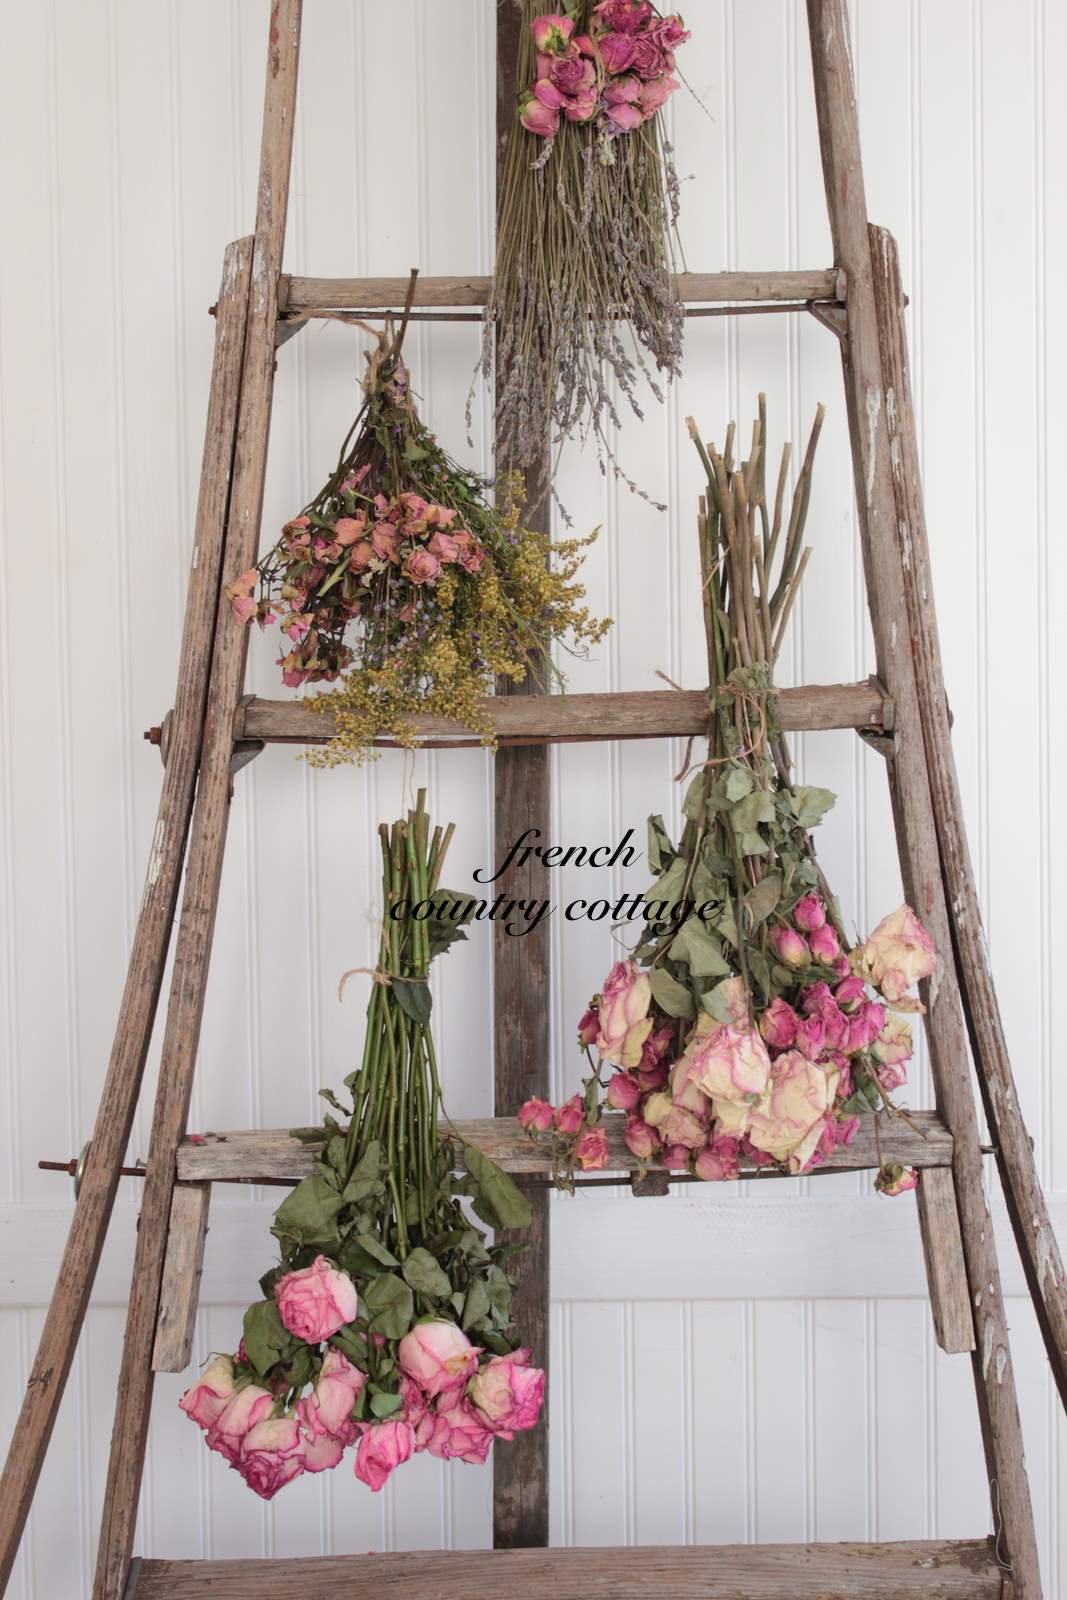 Vintage Orchard Ladder Love - FRENCH COUNTRY COTTAGE